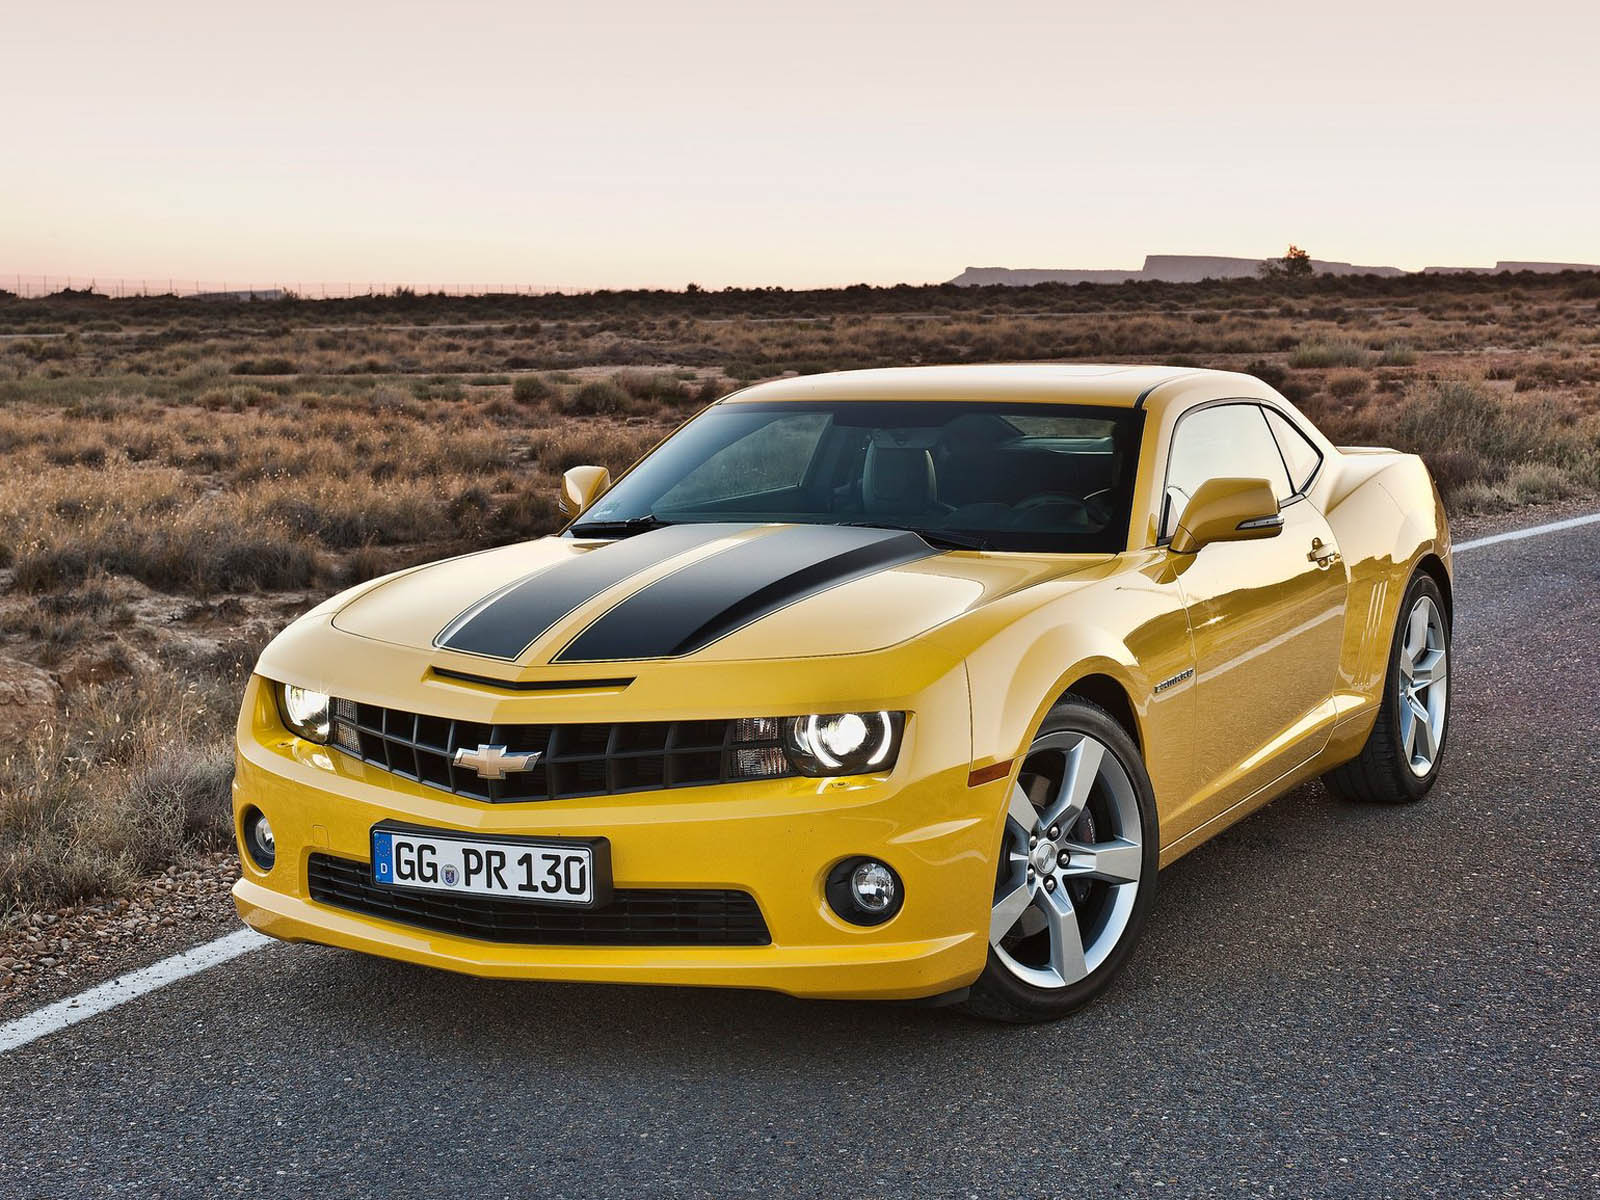 top cars zone camaro ss 2012 yellow picture. Black Bedroom Furniture Sets. Home Design Ideas